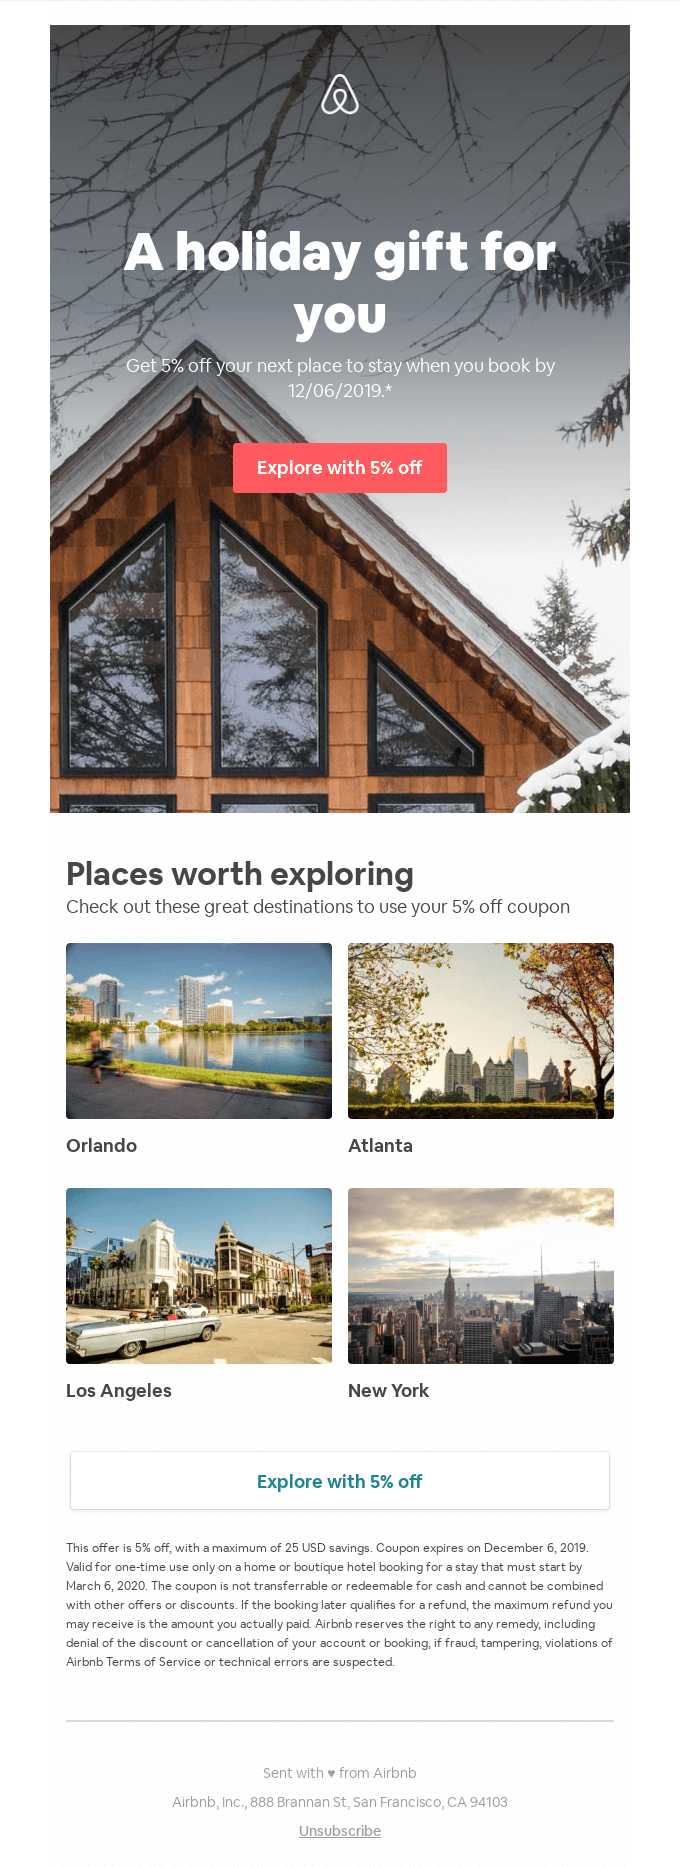 Holiday email marketing campaign - Airbnb